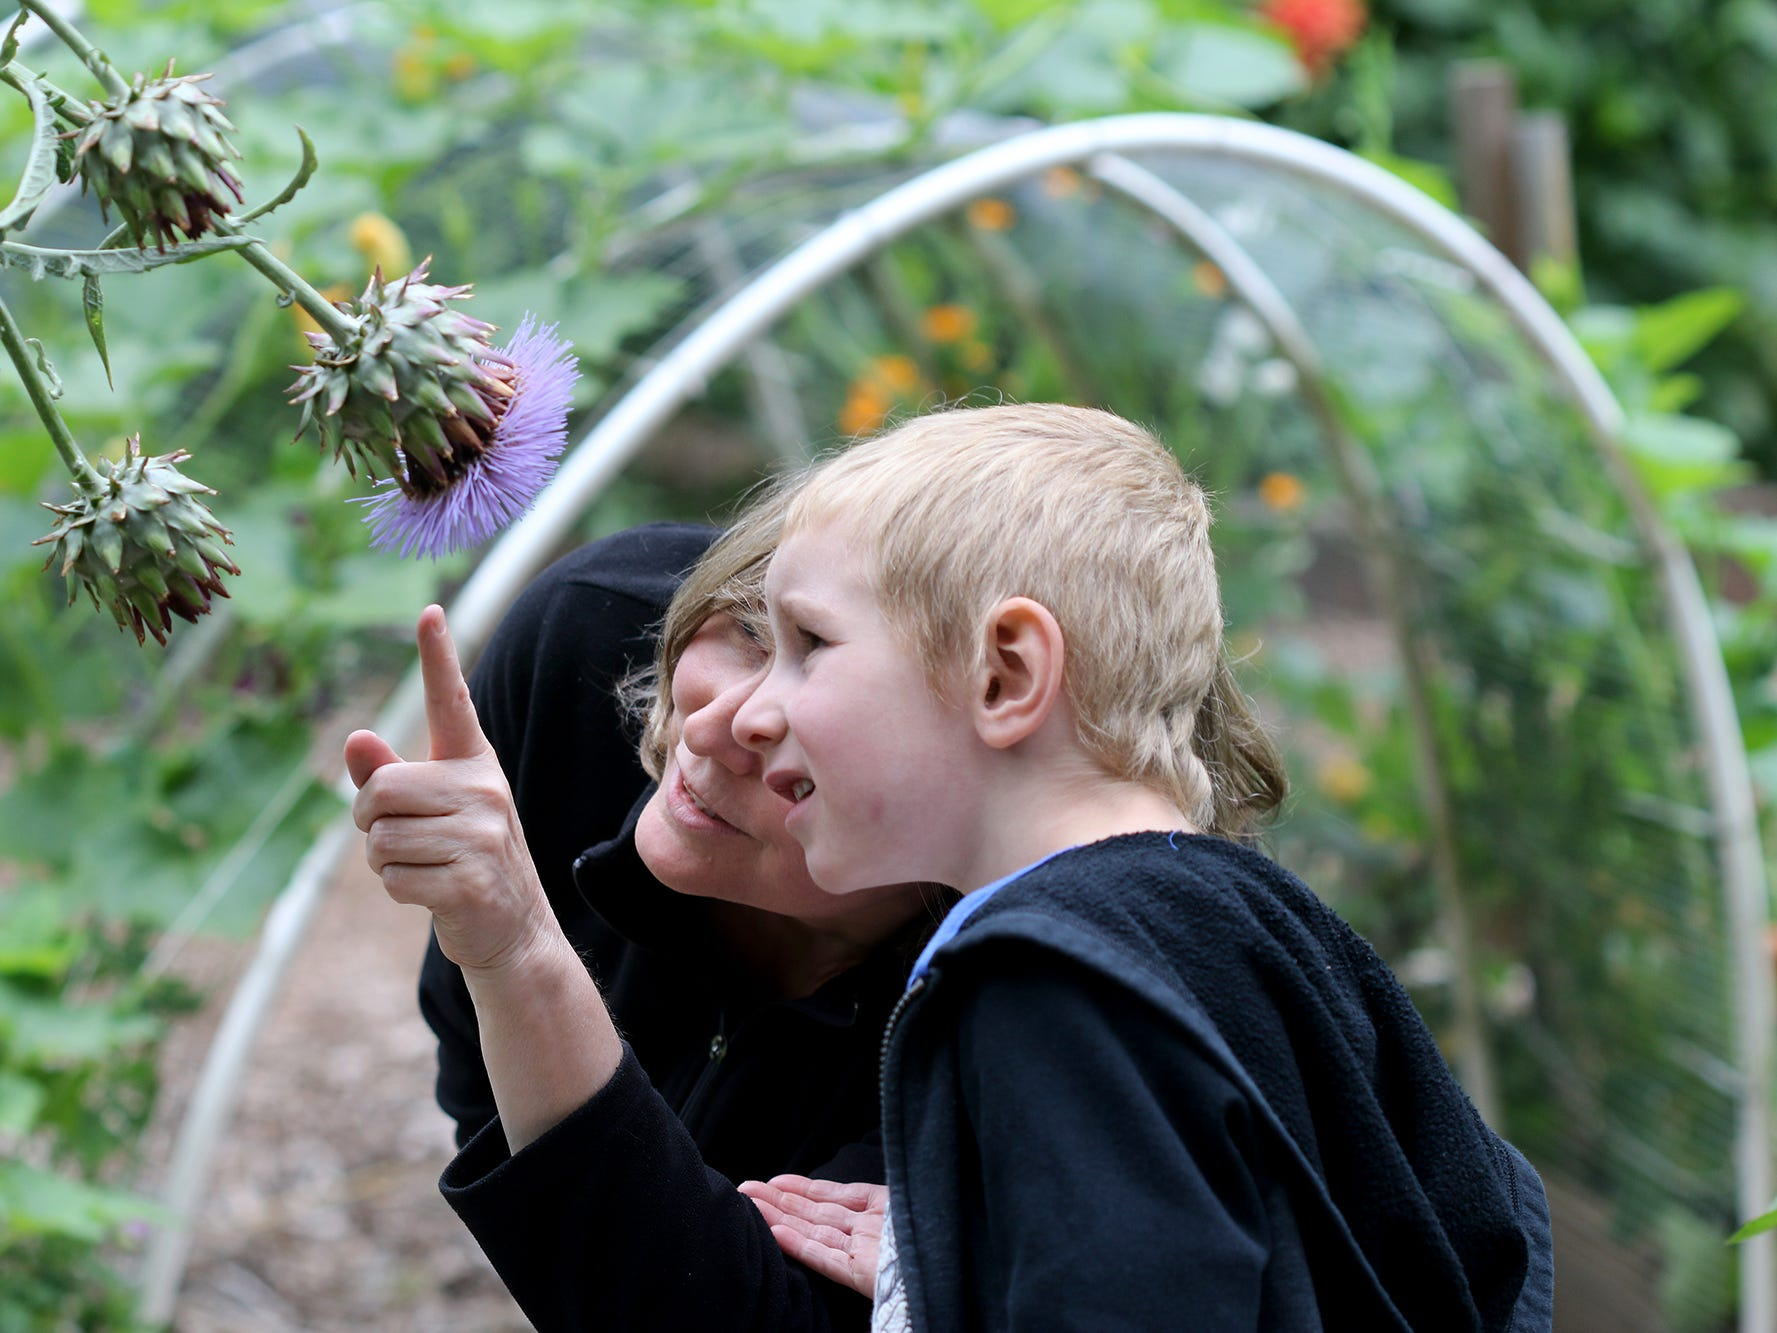 Debbie Anne, of Poulsbo, shows her grandson Keegan Lockwood, 6, a bee at Anna Smith Garden on Saturday, August 4, 2018.